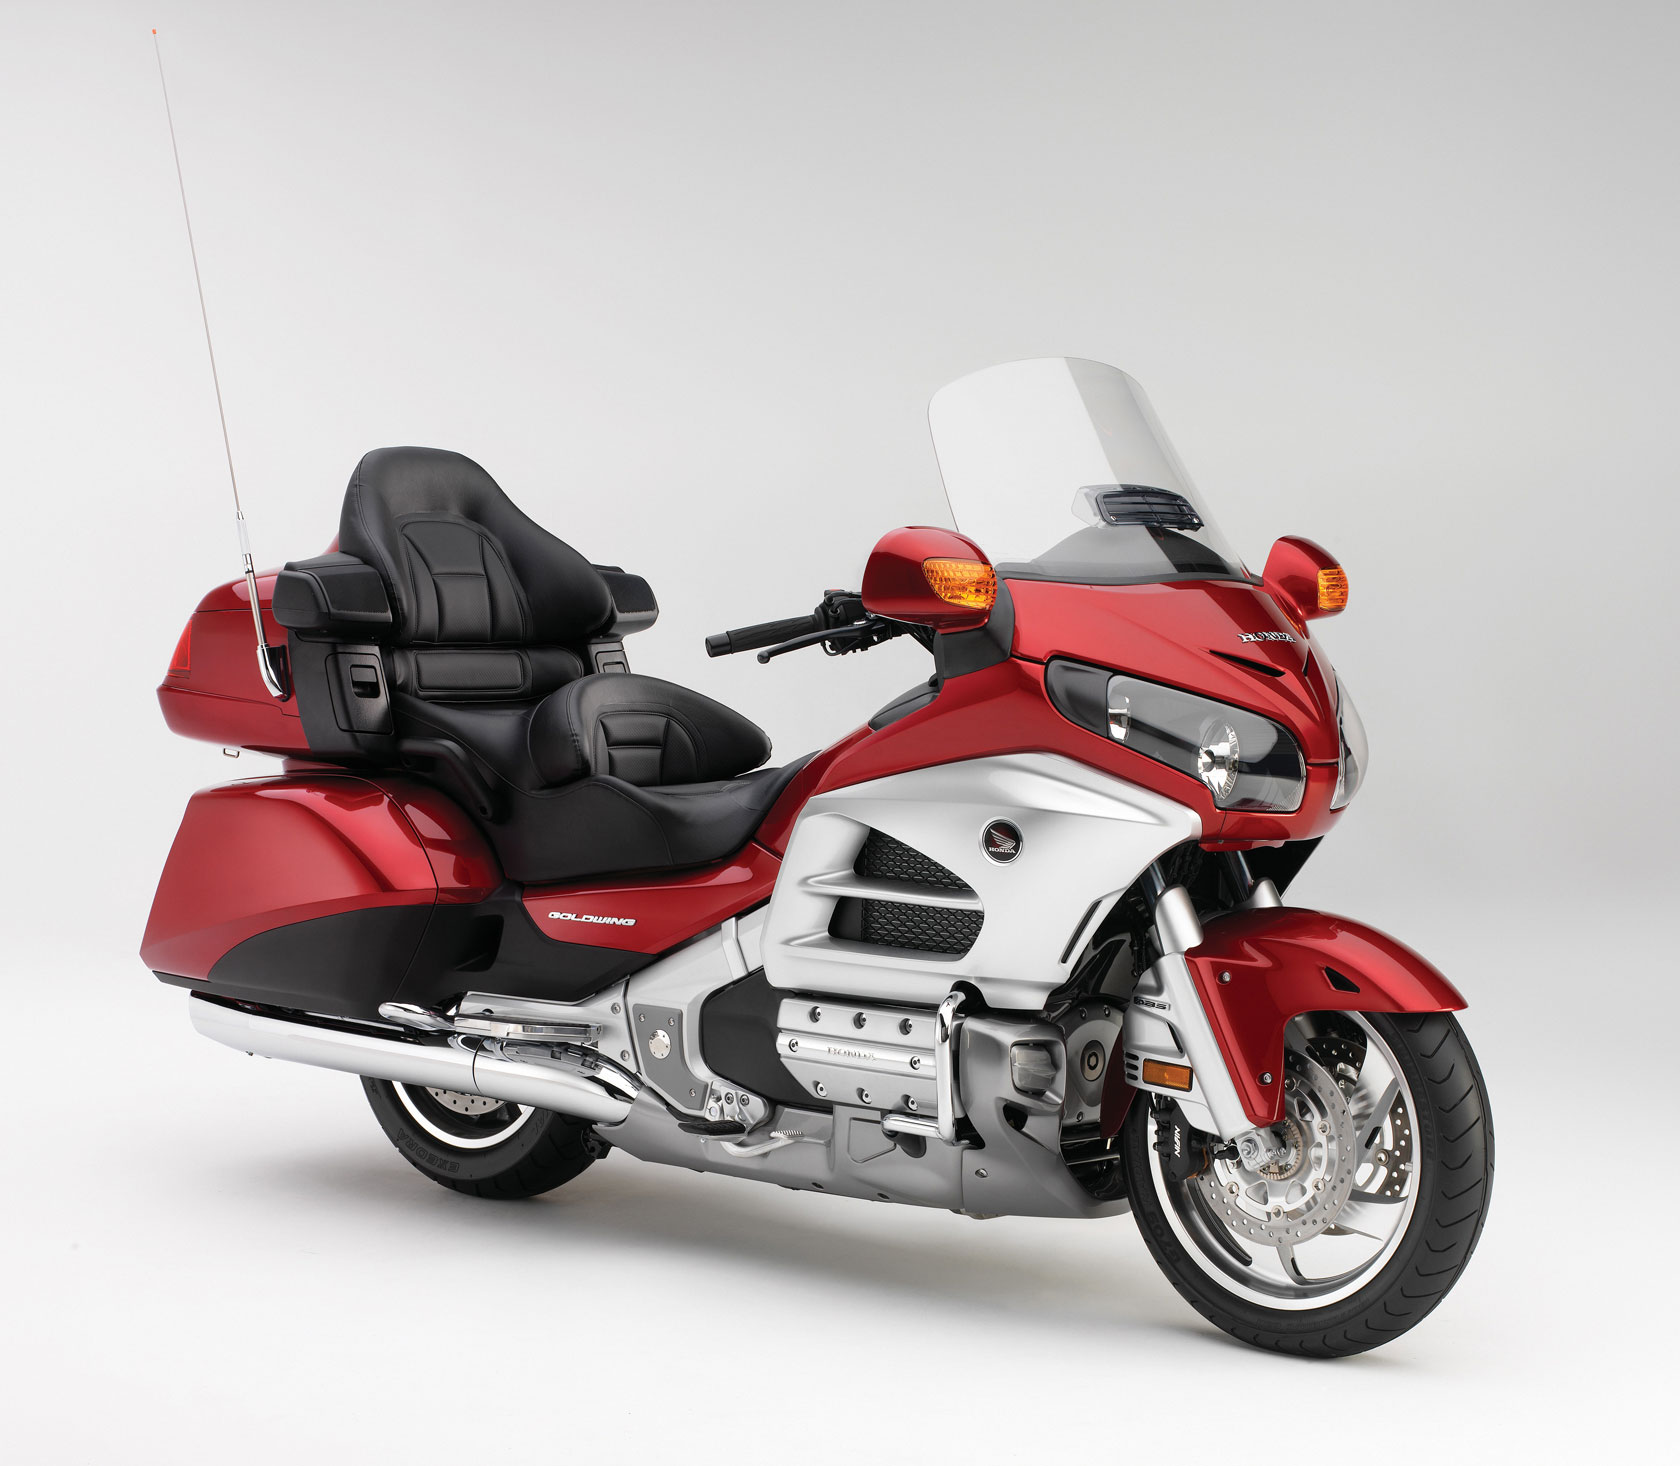 Honda GL 1800 Gold Wing 2013 images #83171